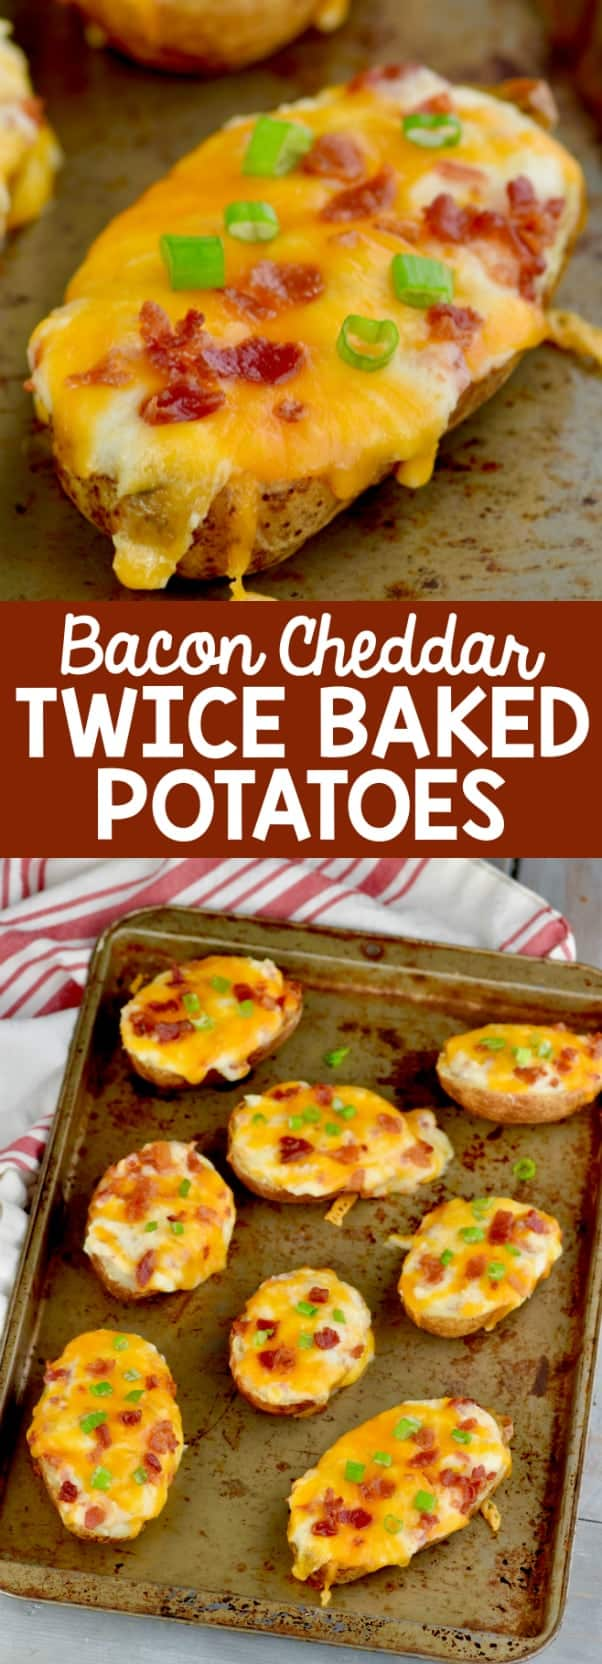 A collage of two photos of the Bacon Cheddar Twice Baked Potato: one of a close up photo and the other is a picture of a sheet pan with 8 Bacon Cheddar Twice Baked Potato.